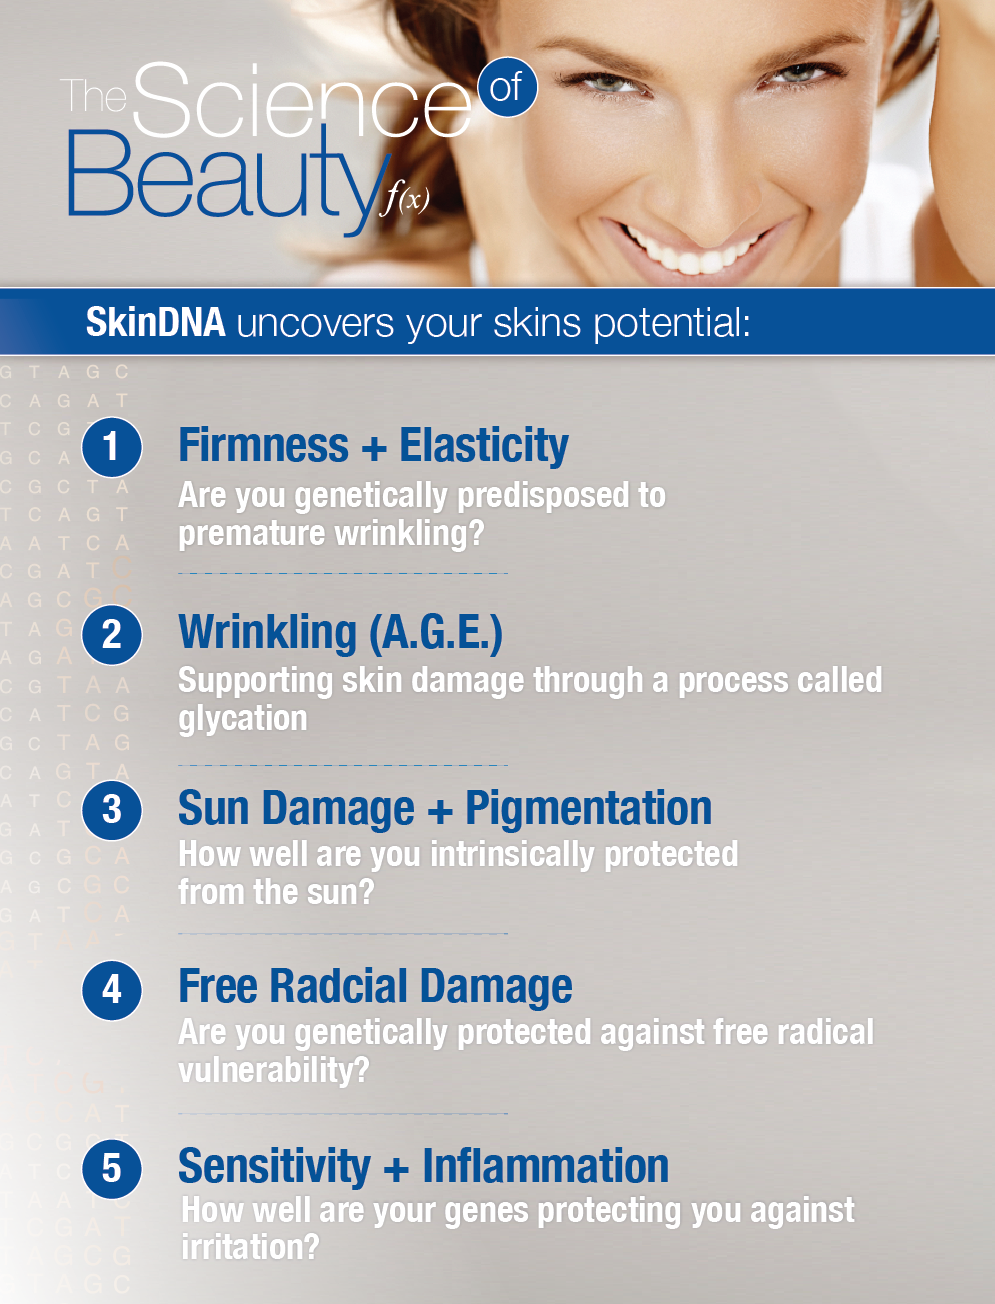 SkinDNA Genetic Test Categories, also used by SkinShift Skincare, by Stefan Mazy